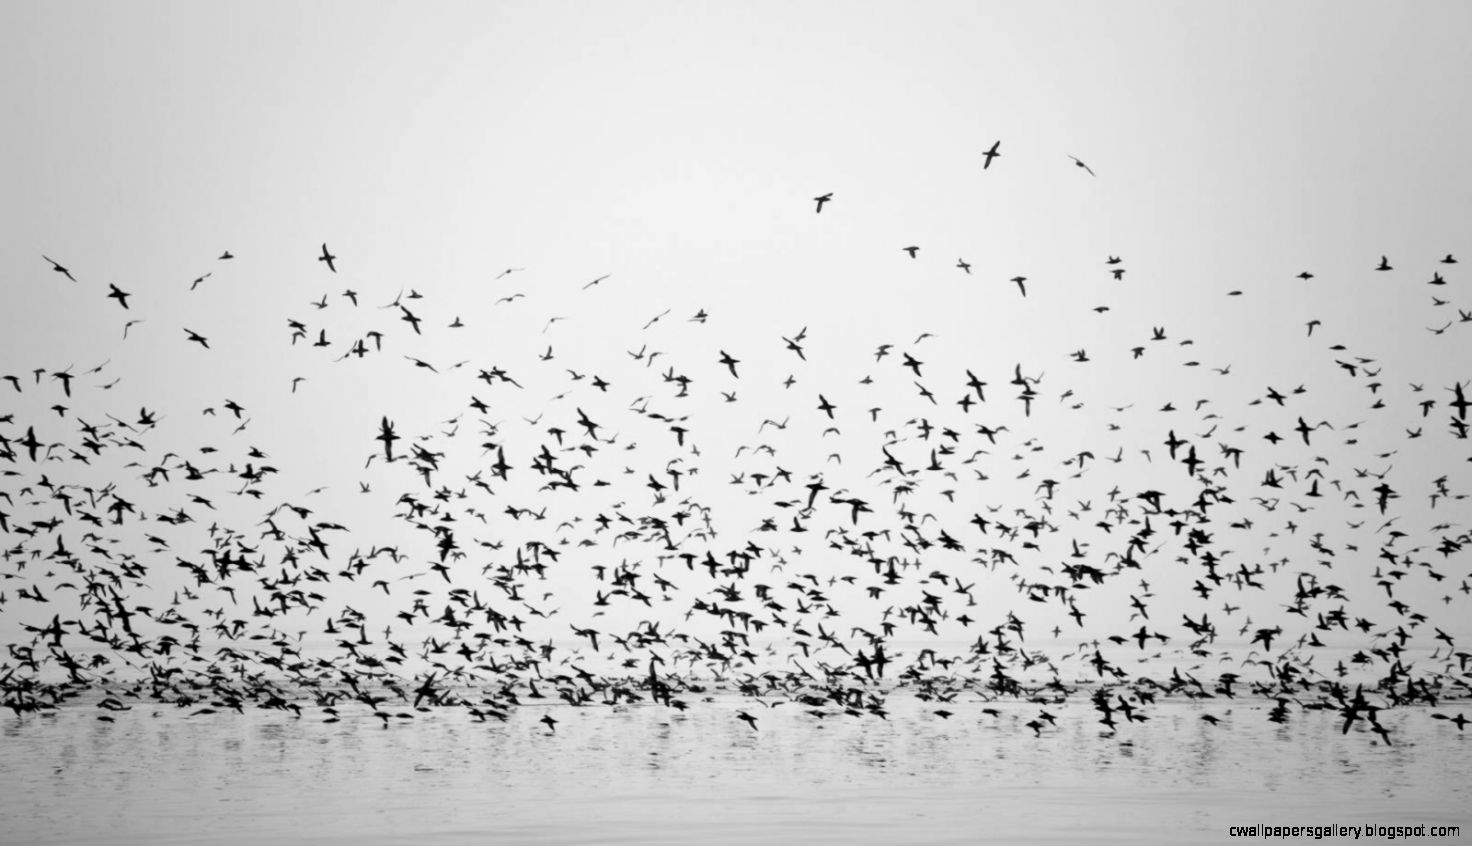 Bird Wallpaper Black And White | Wallpapers Gallery